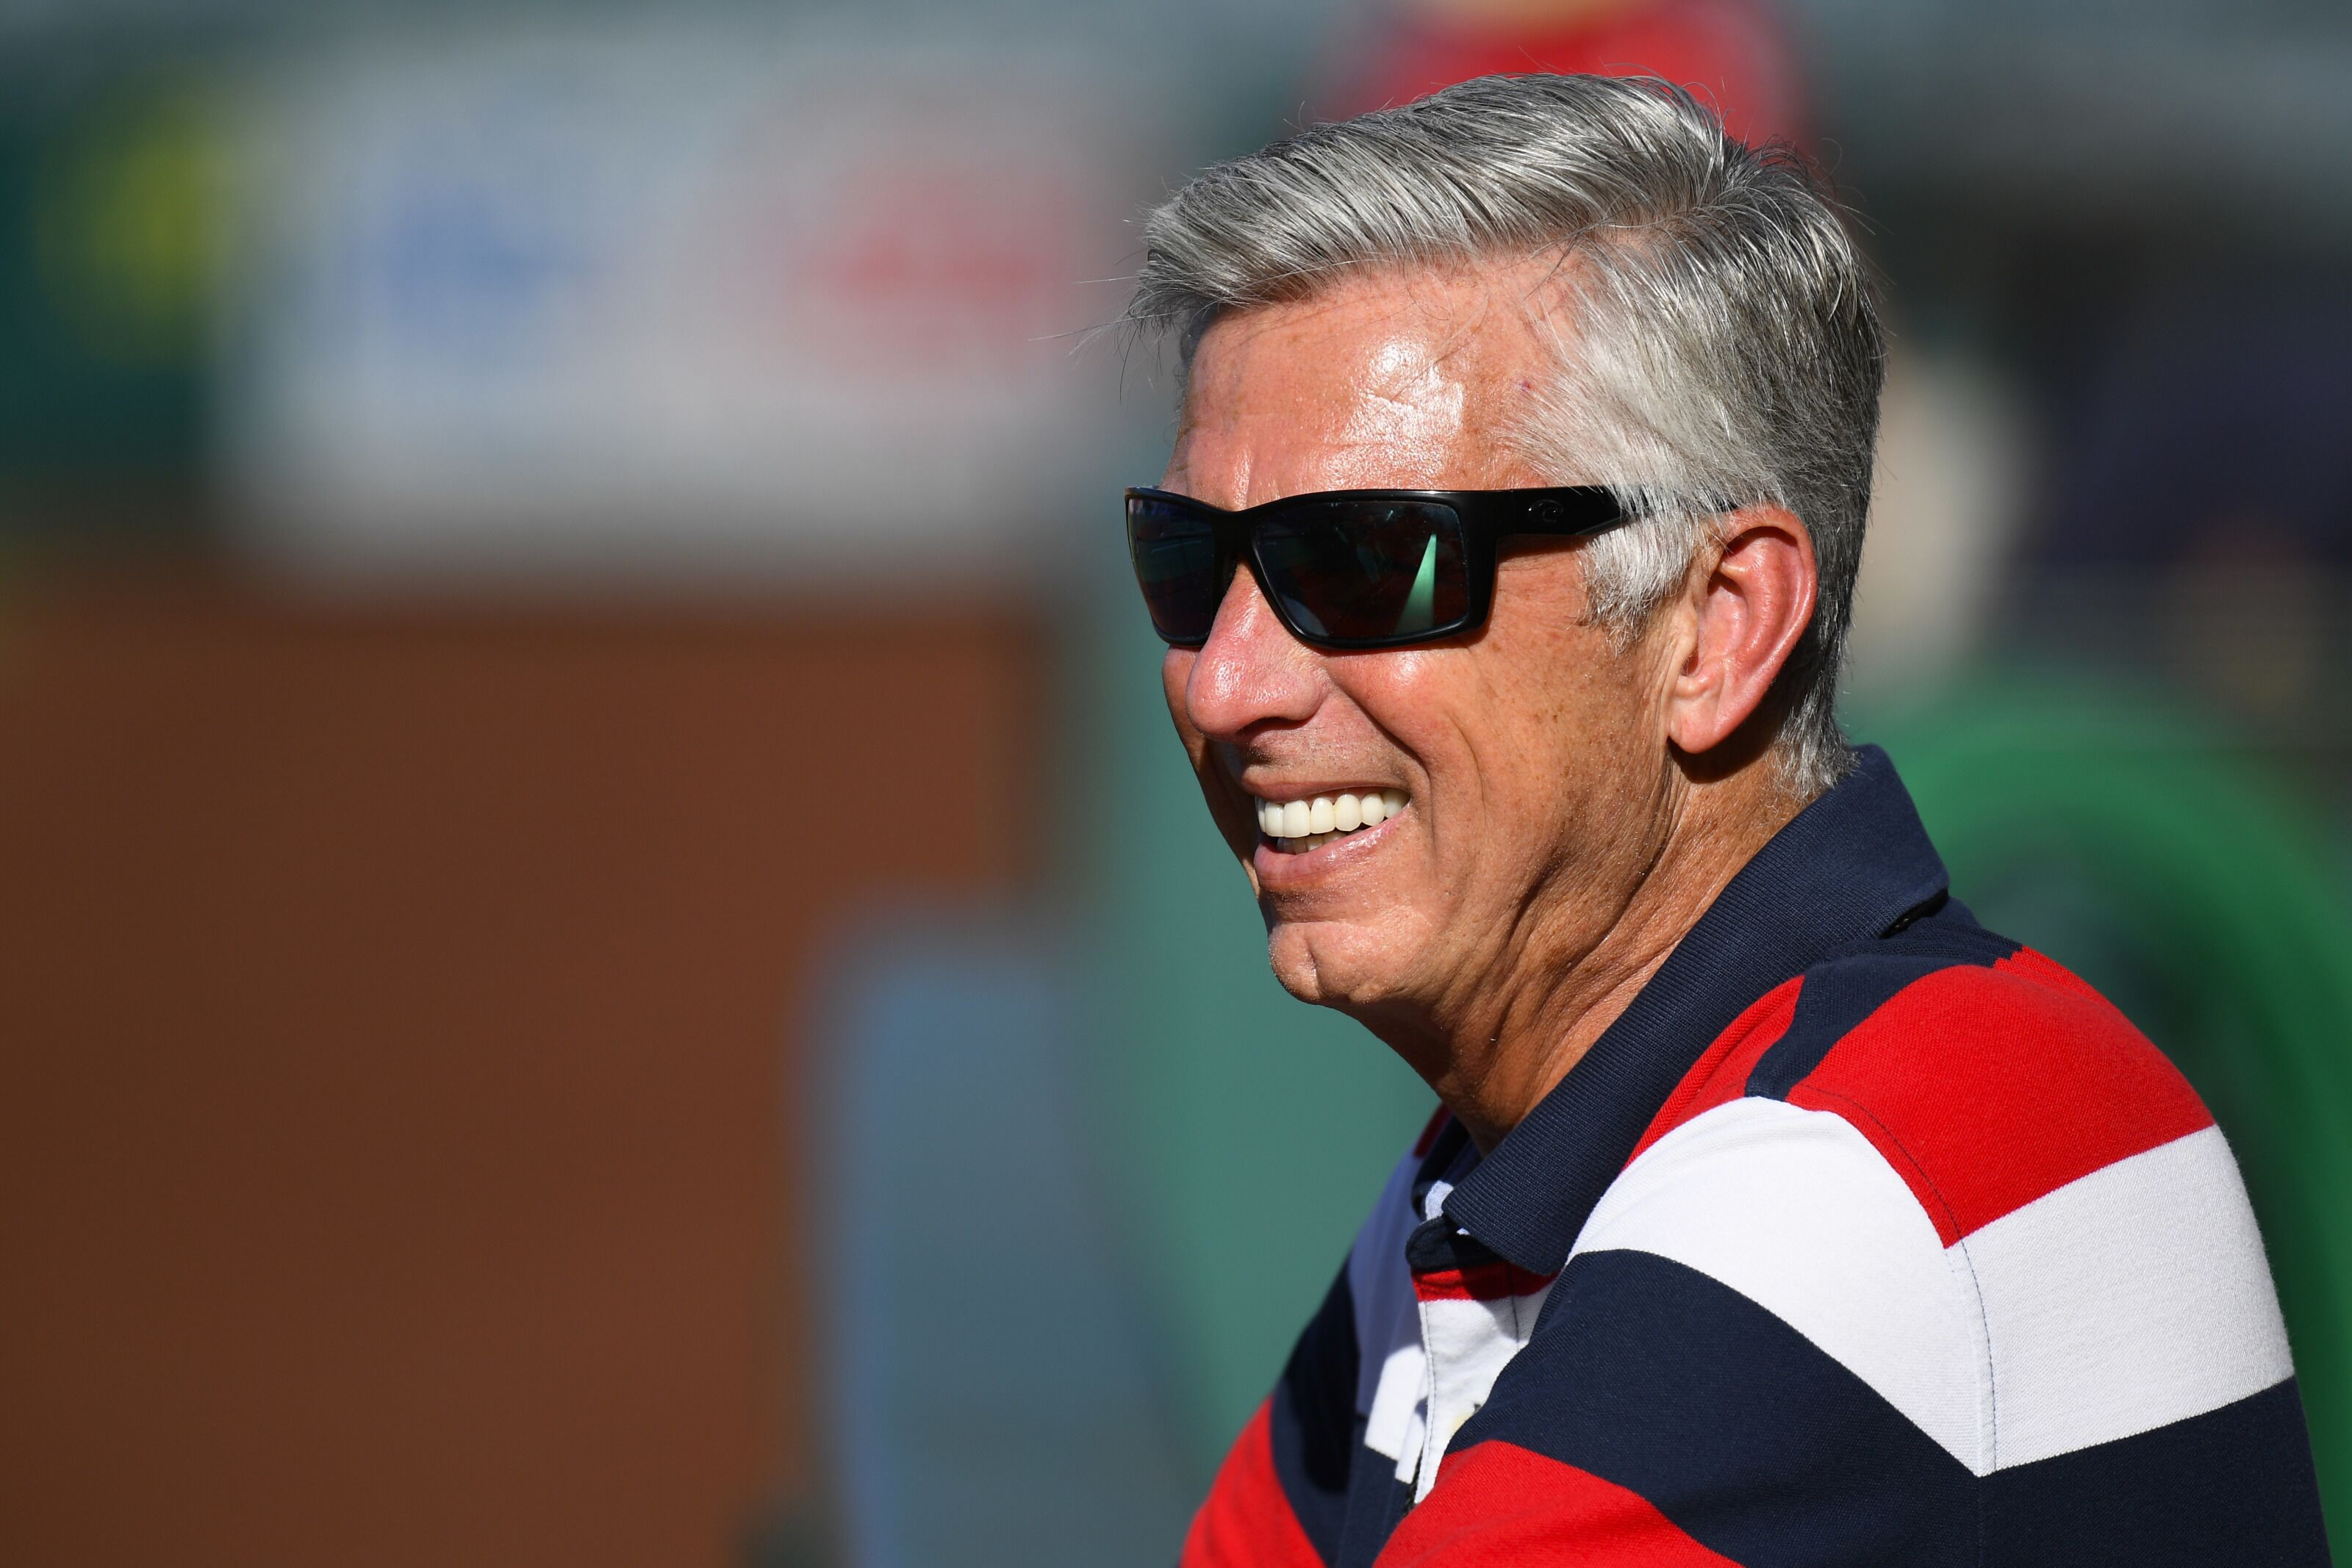 Phillies: Dave Dombrowski interested in front office job